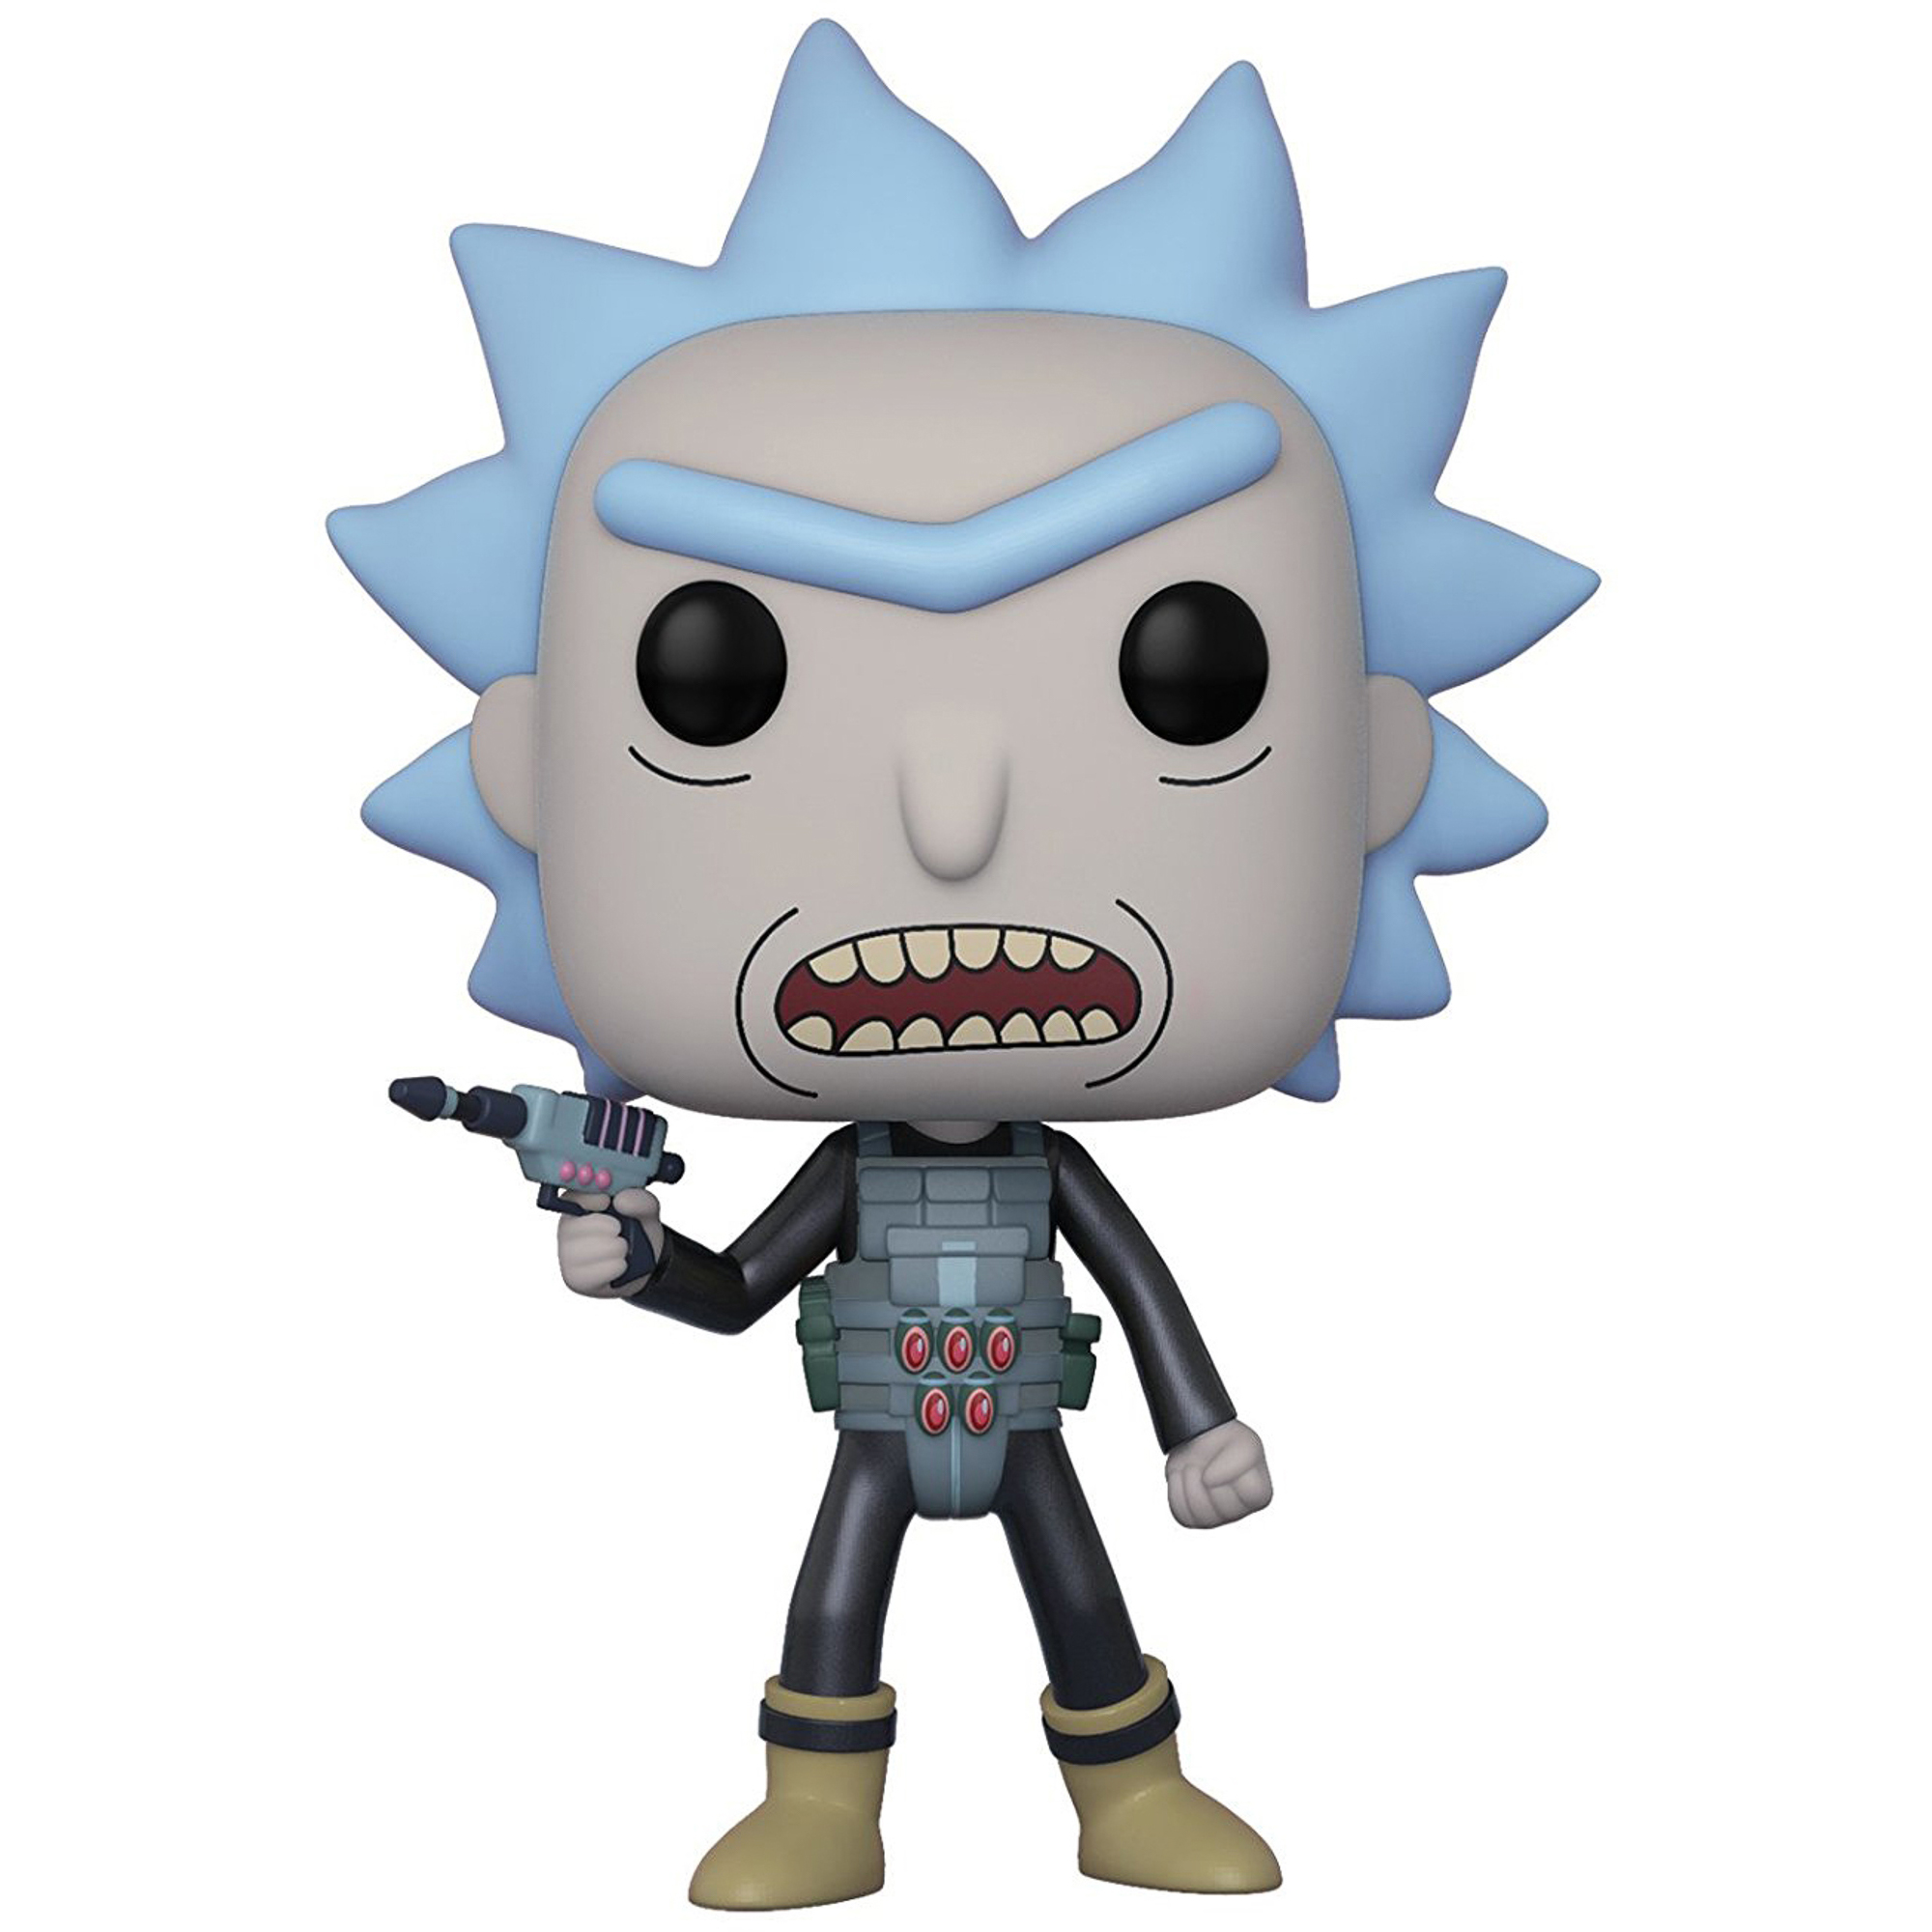 Фигурка Funko Rick and Morty Prison Break Rick фото